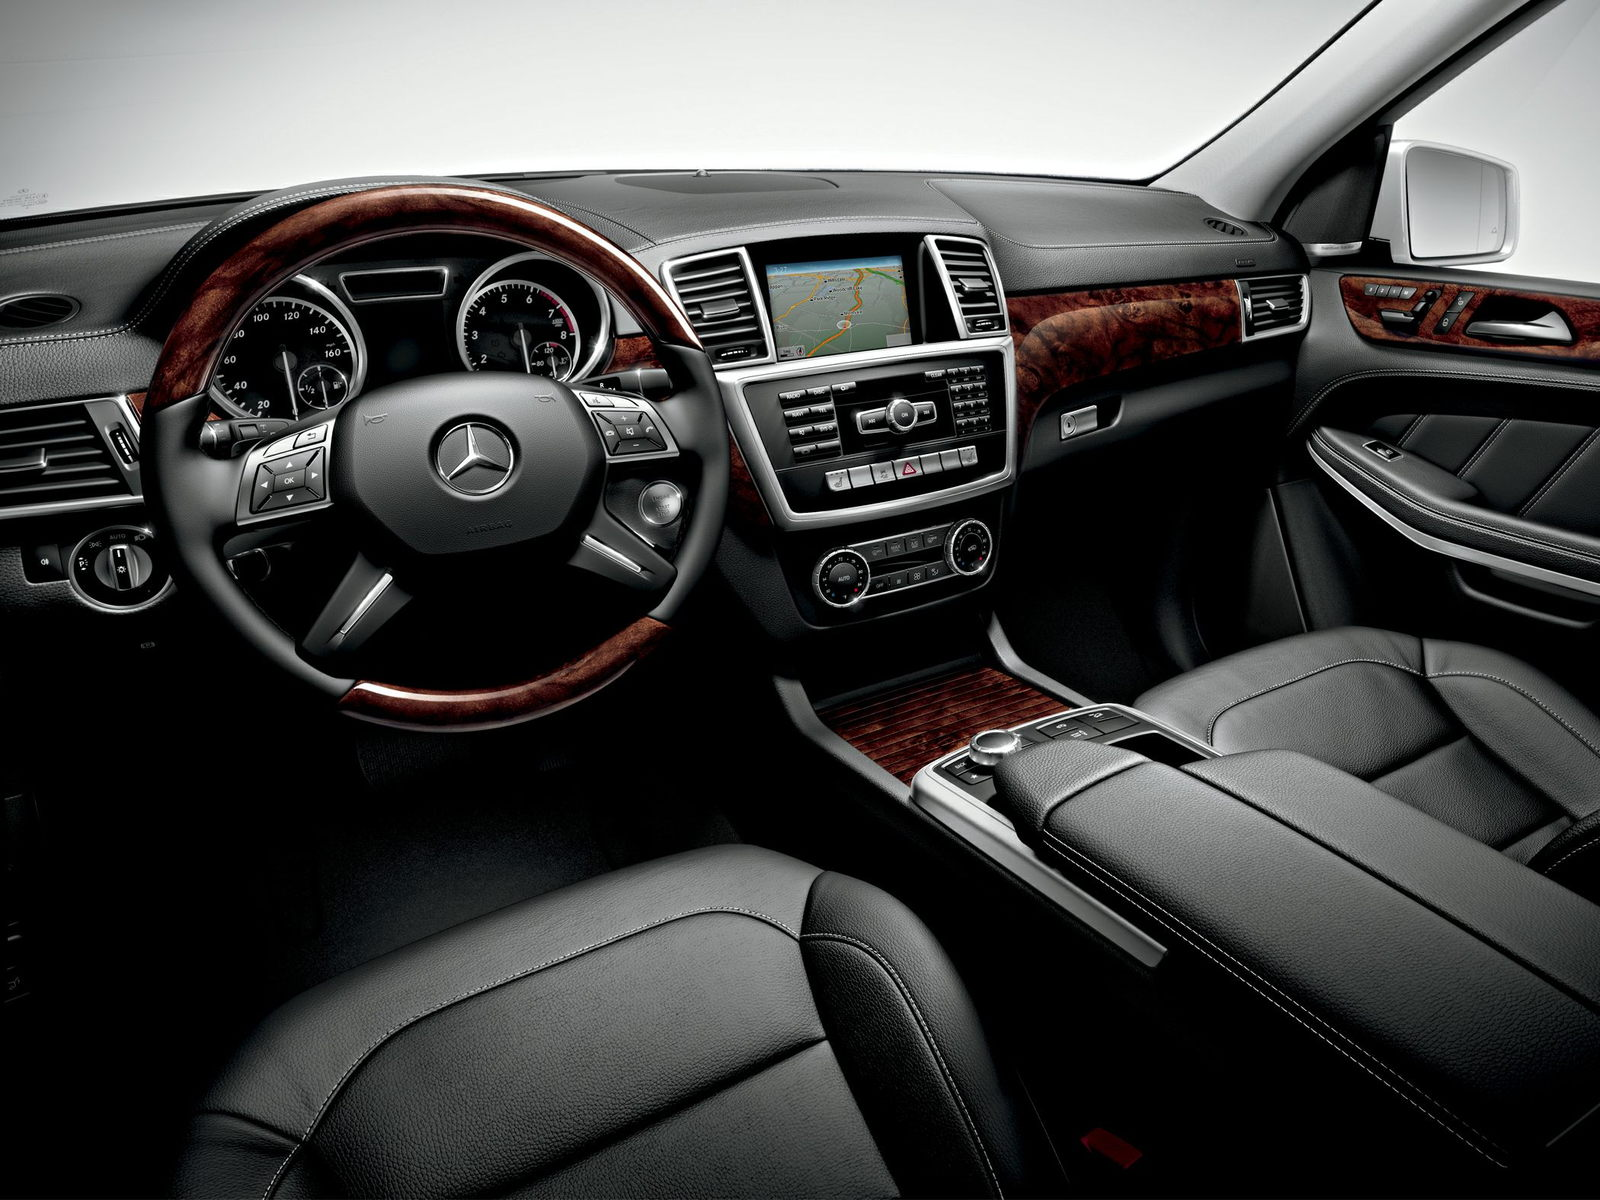 Mercedes-Benz GL550 Interior